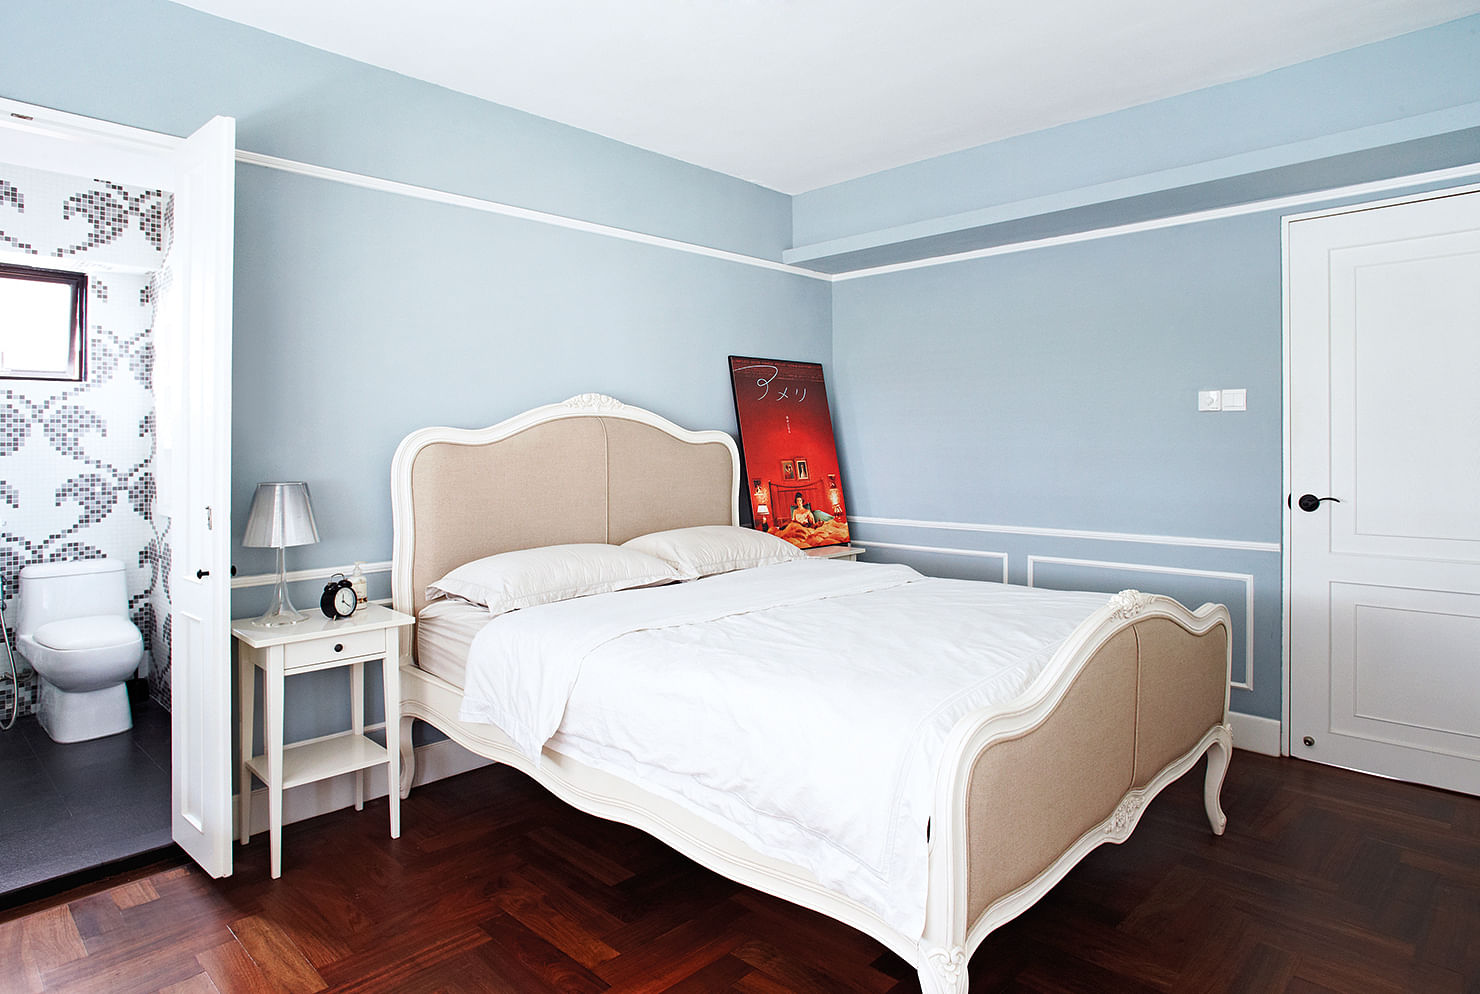 A european inspired hdb flat why not home decor for Home decor ideas singapore